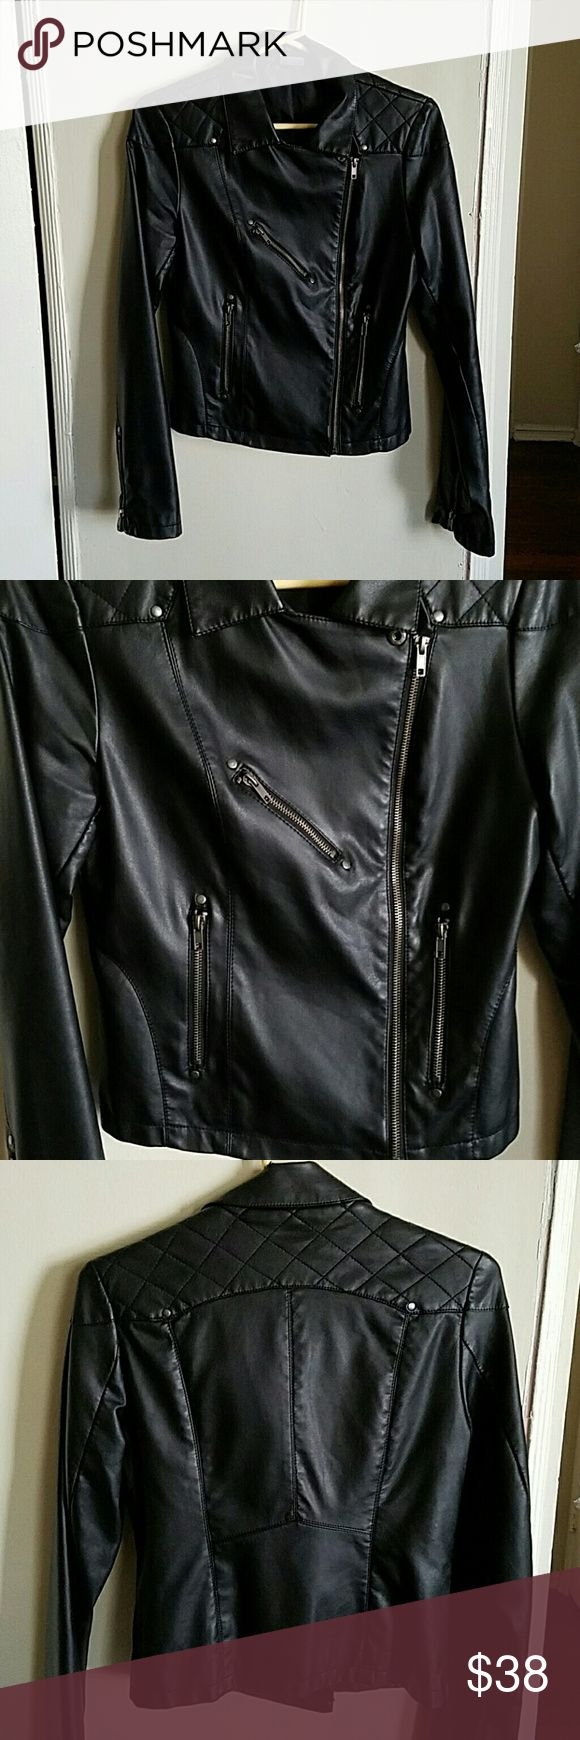 Urban Outfitters Faux Leather Moto Jacket Urban Outfitters faux leather moto jacket by Sparkle & Fade. Zipper pockets. Quilted pattern in the back.  Minor snag at the top of the collar (last pic) Urban Outfitters Jackets & Coats